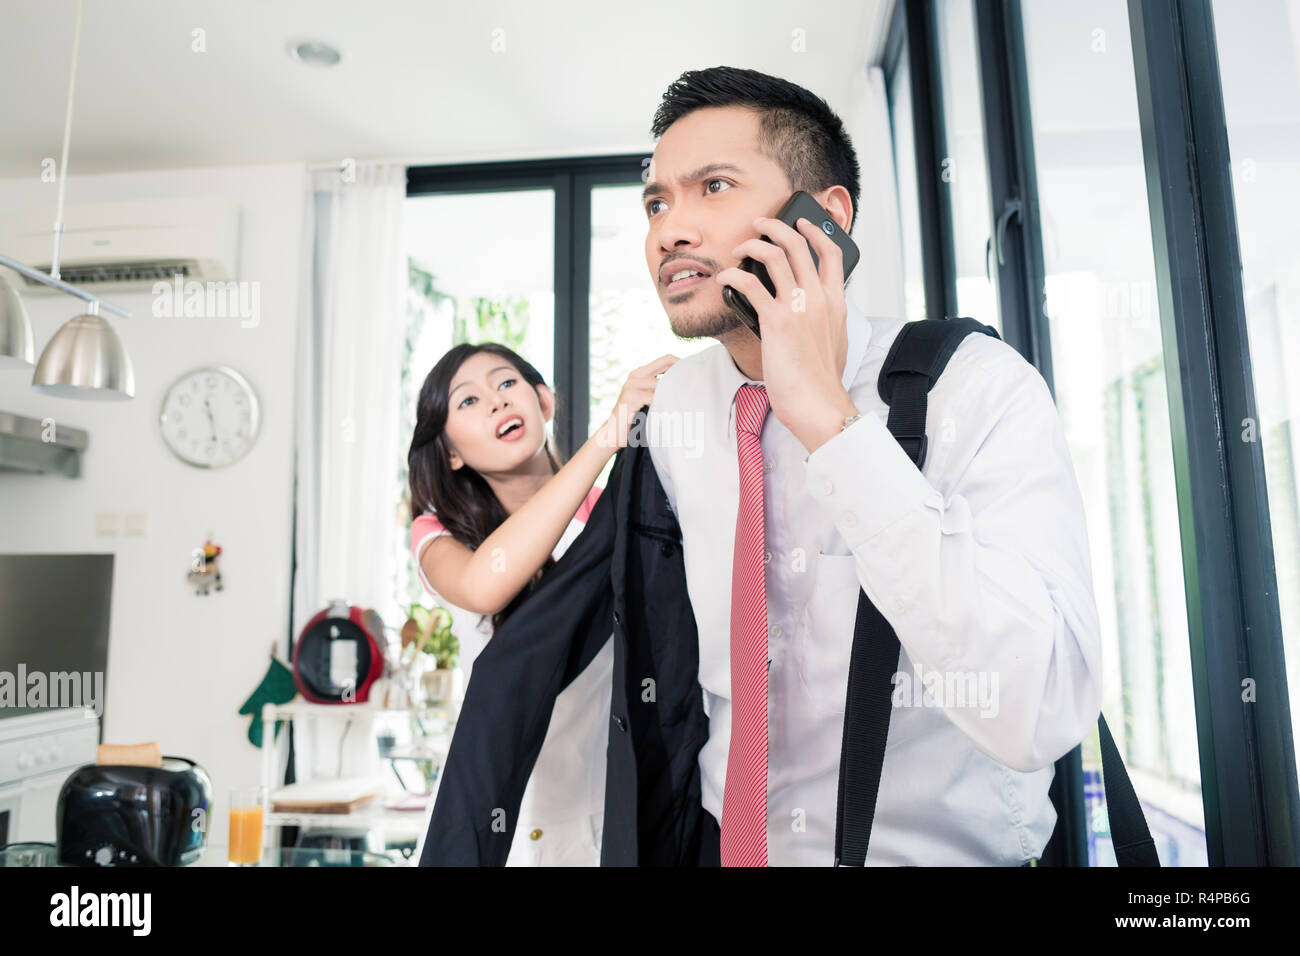 Wife helping man being late for work in jacket Stock Photo